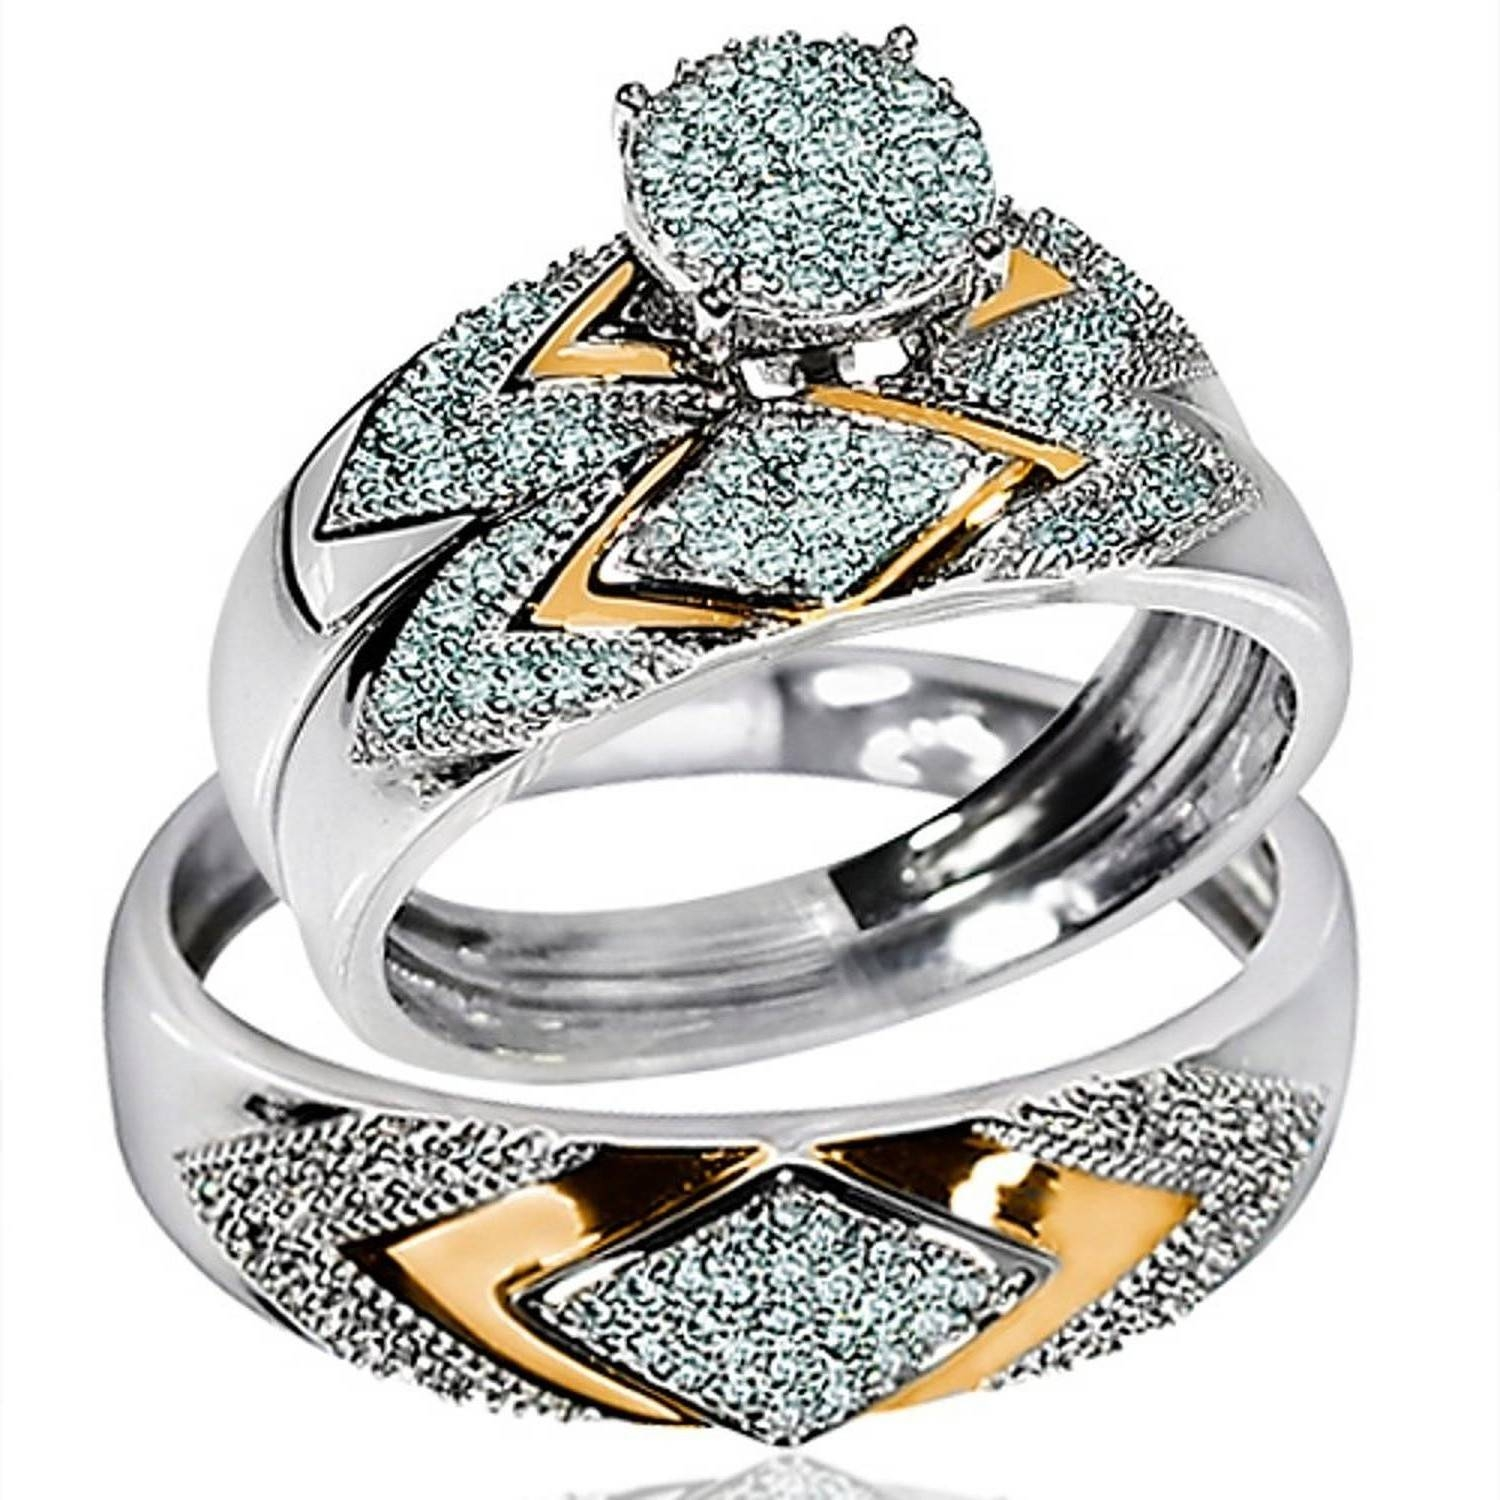 Wedding Rings : Elaborate Engagement Rings The Most Expensive Pertaining To Extravagant Engagement Rings (View 11 of 15)